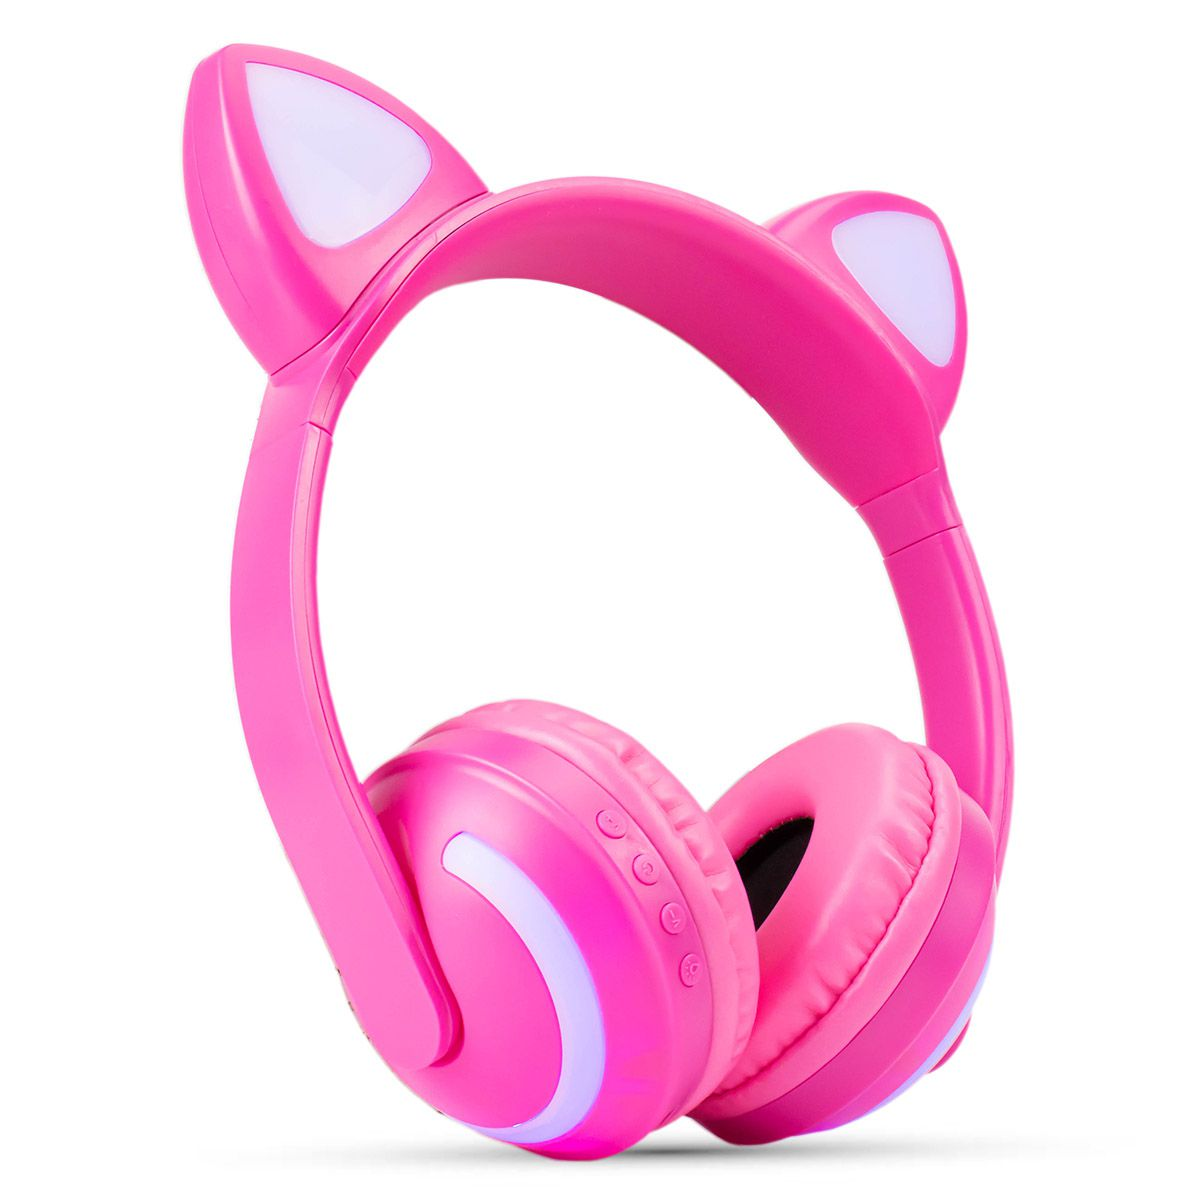 Headphone Bluetooth Orelhas de Gato com Led Exbom HF-C240BT